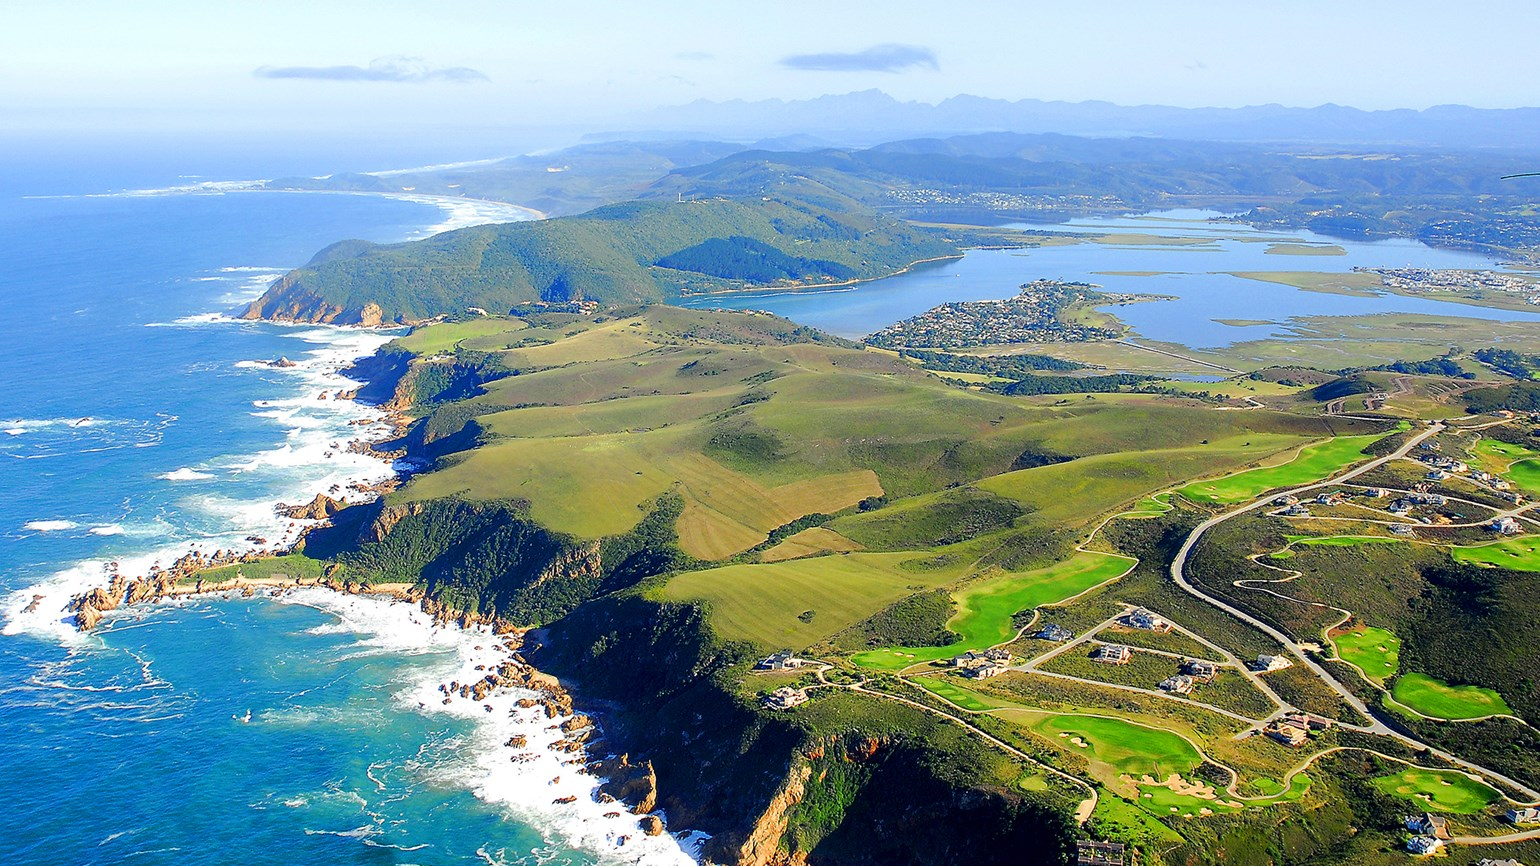 The Garden Route, South Africa's most scenic and eventful self-drive route